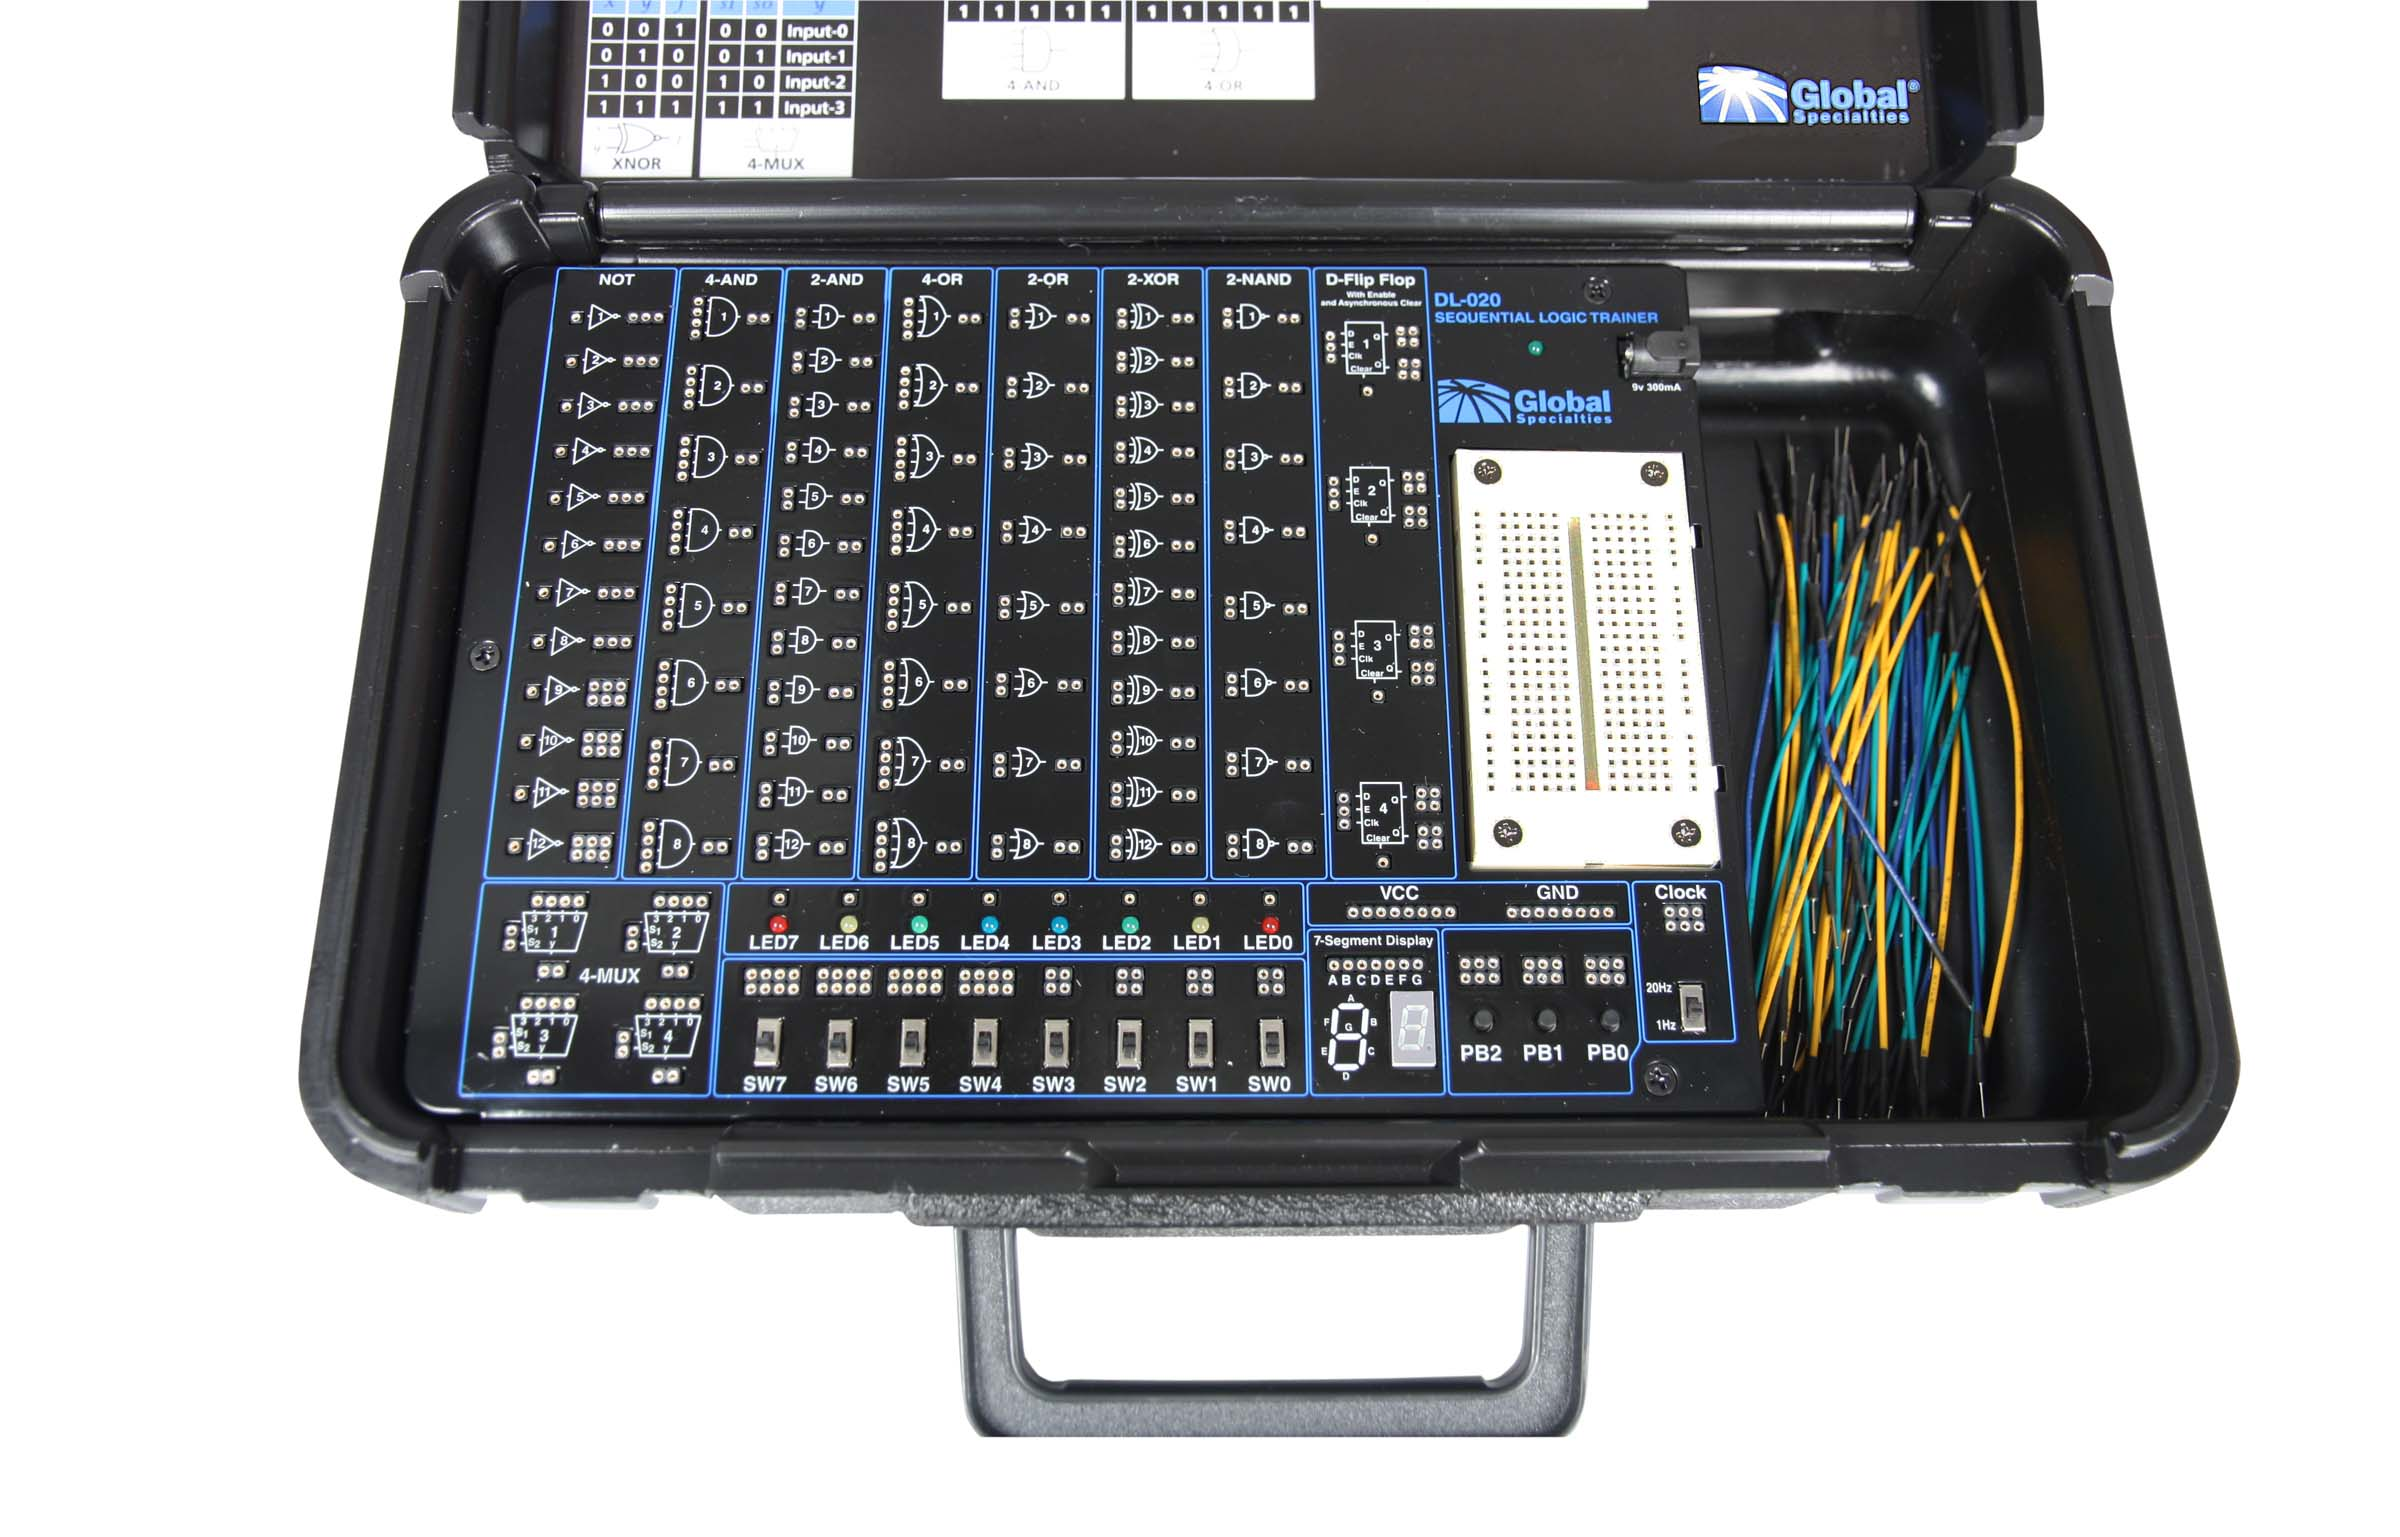 Global Specialties DL-020 Sequential Logic Trainer Photo